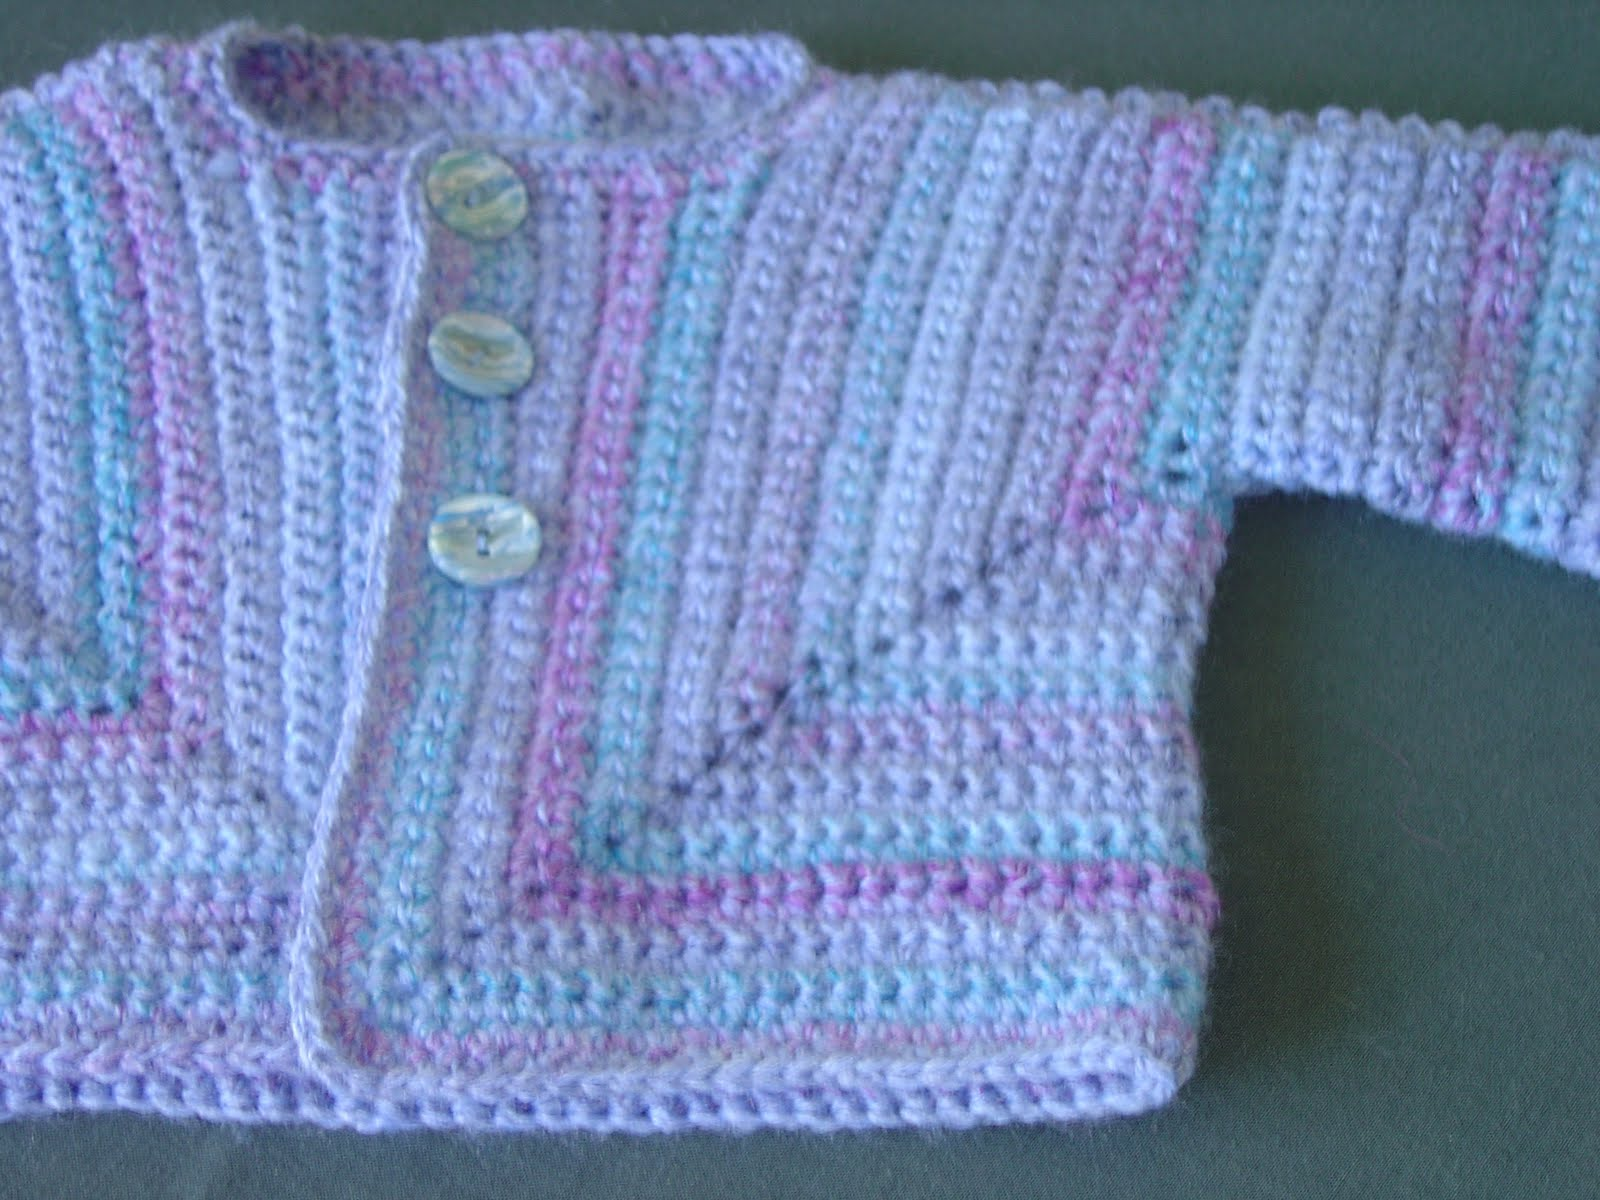 Crochet Surprise Jacket Free Pattern : Enthusiastic crochetoholic: Another Crocheted Baby ...